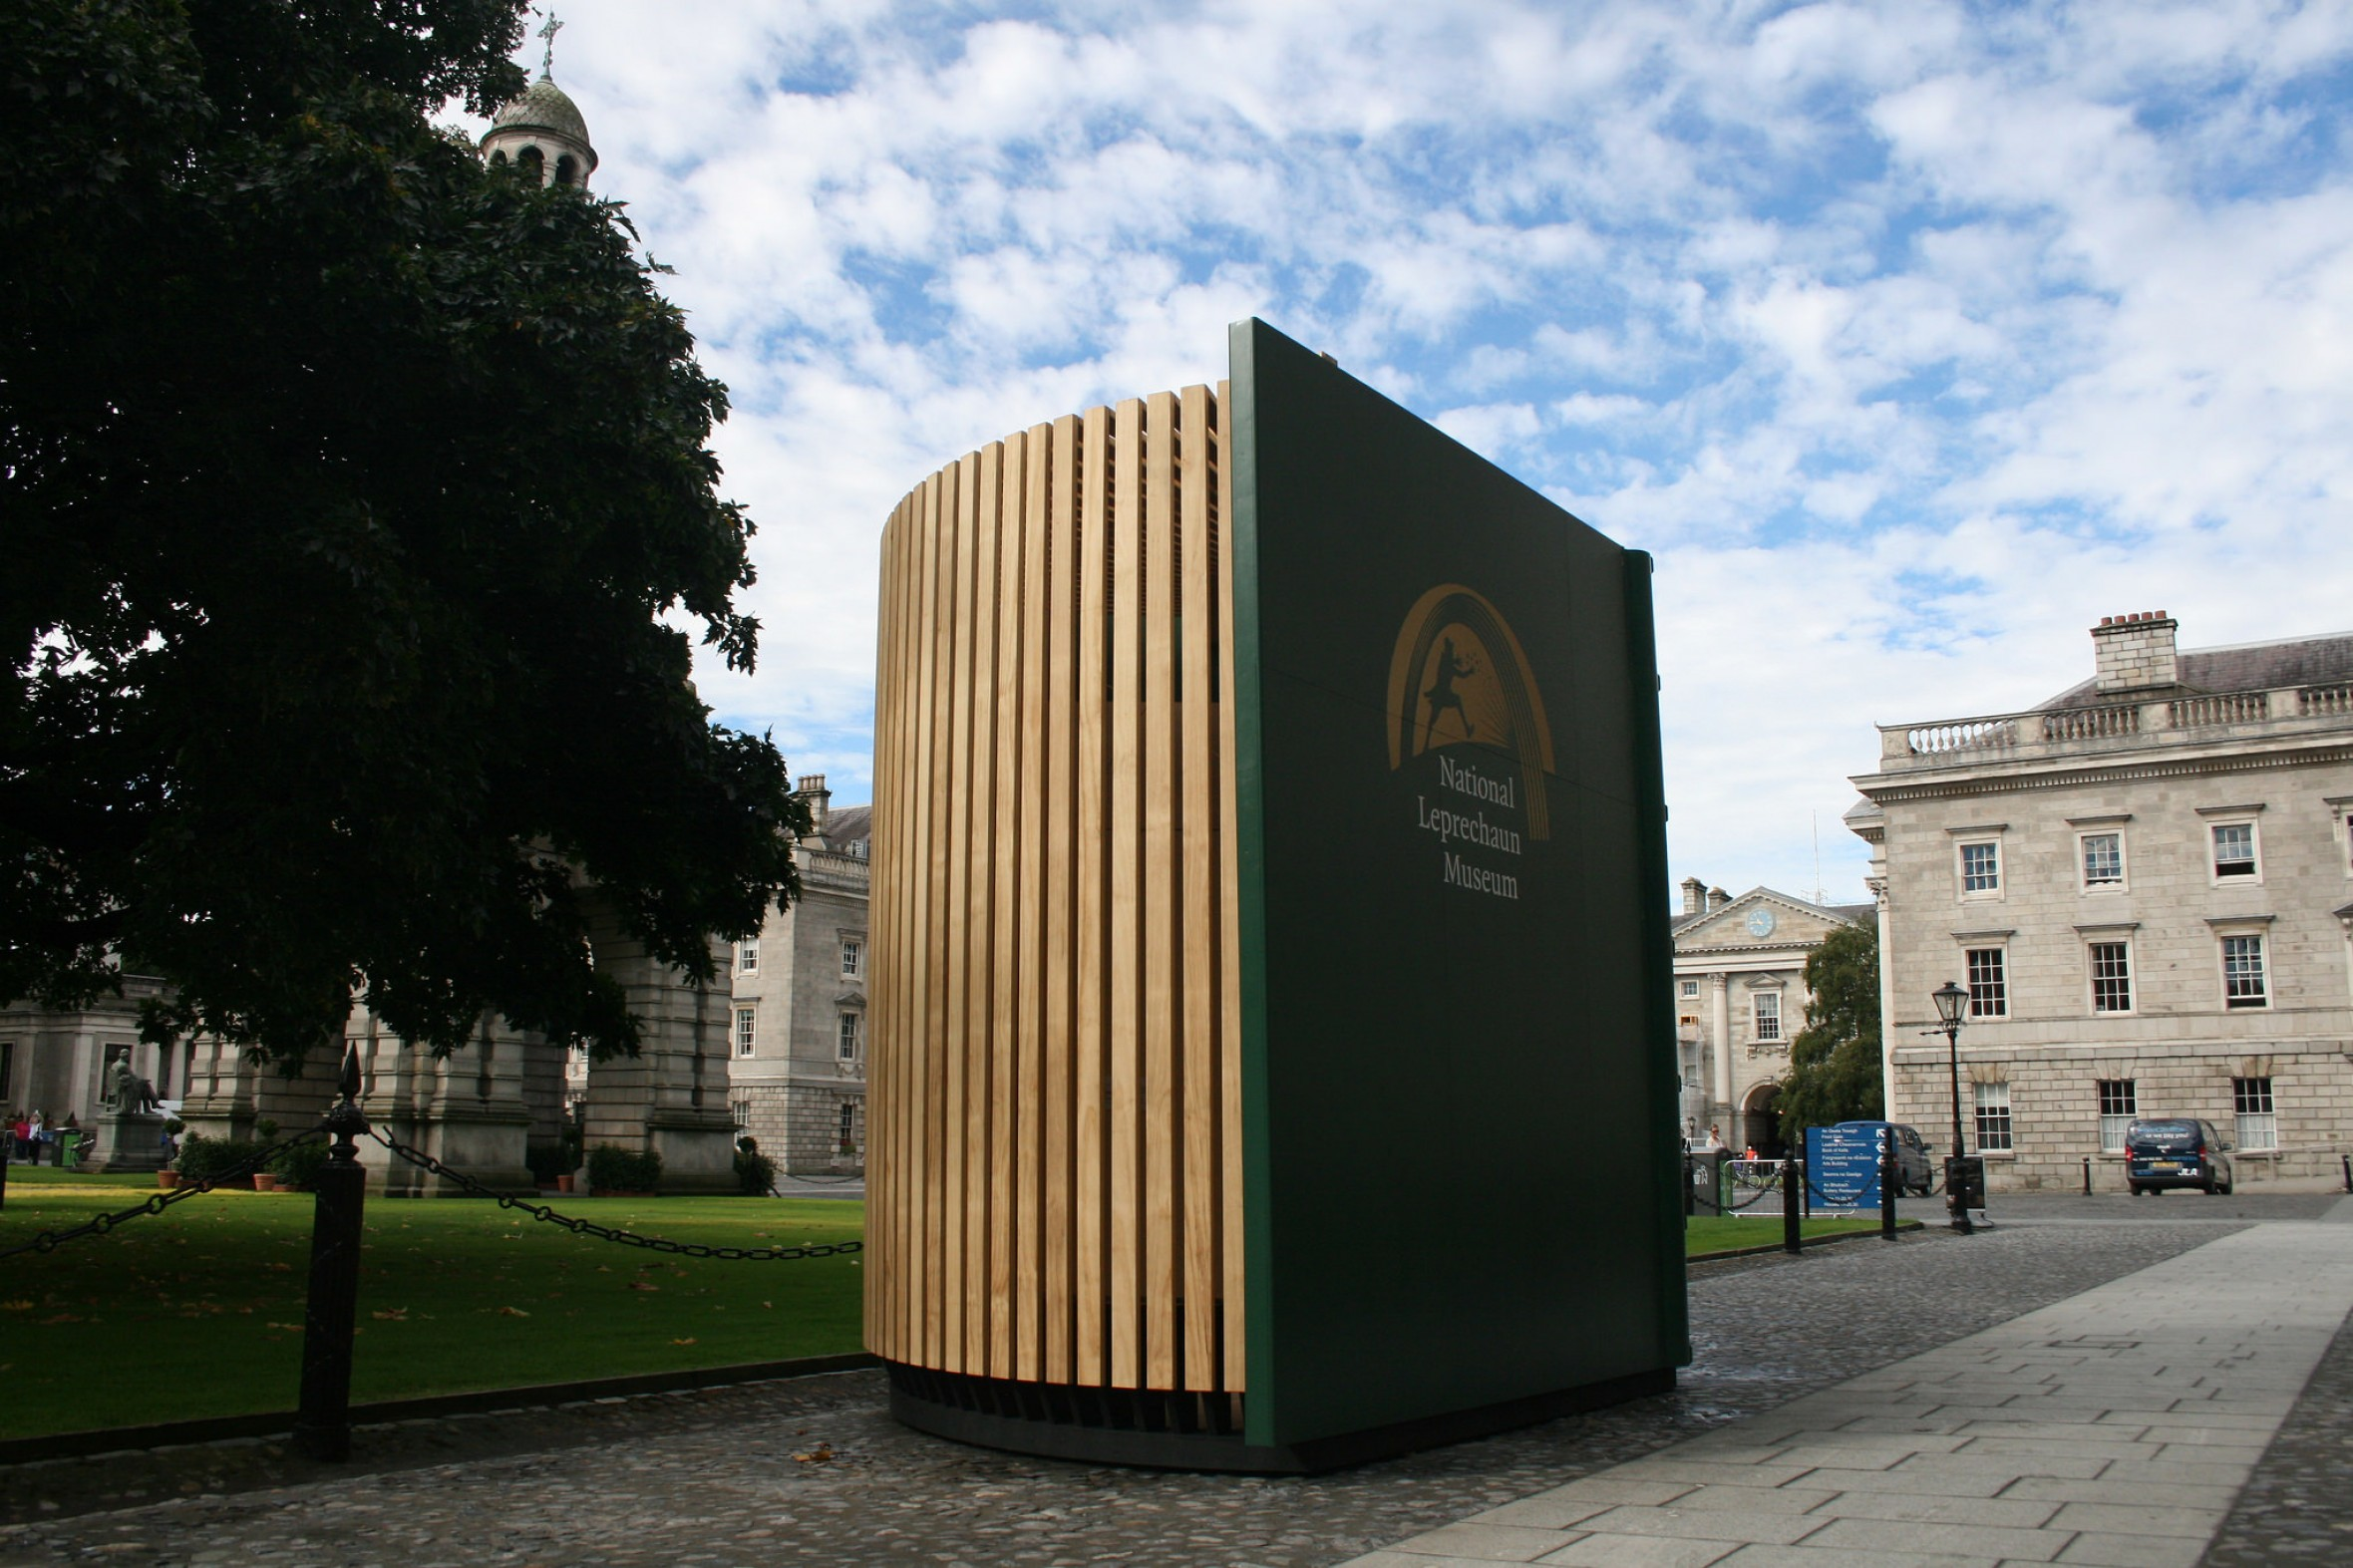 TRICOYA - The Big Book by the National Leprechaun Museum in Ireland